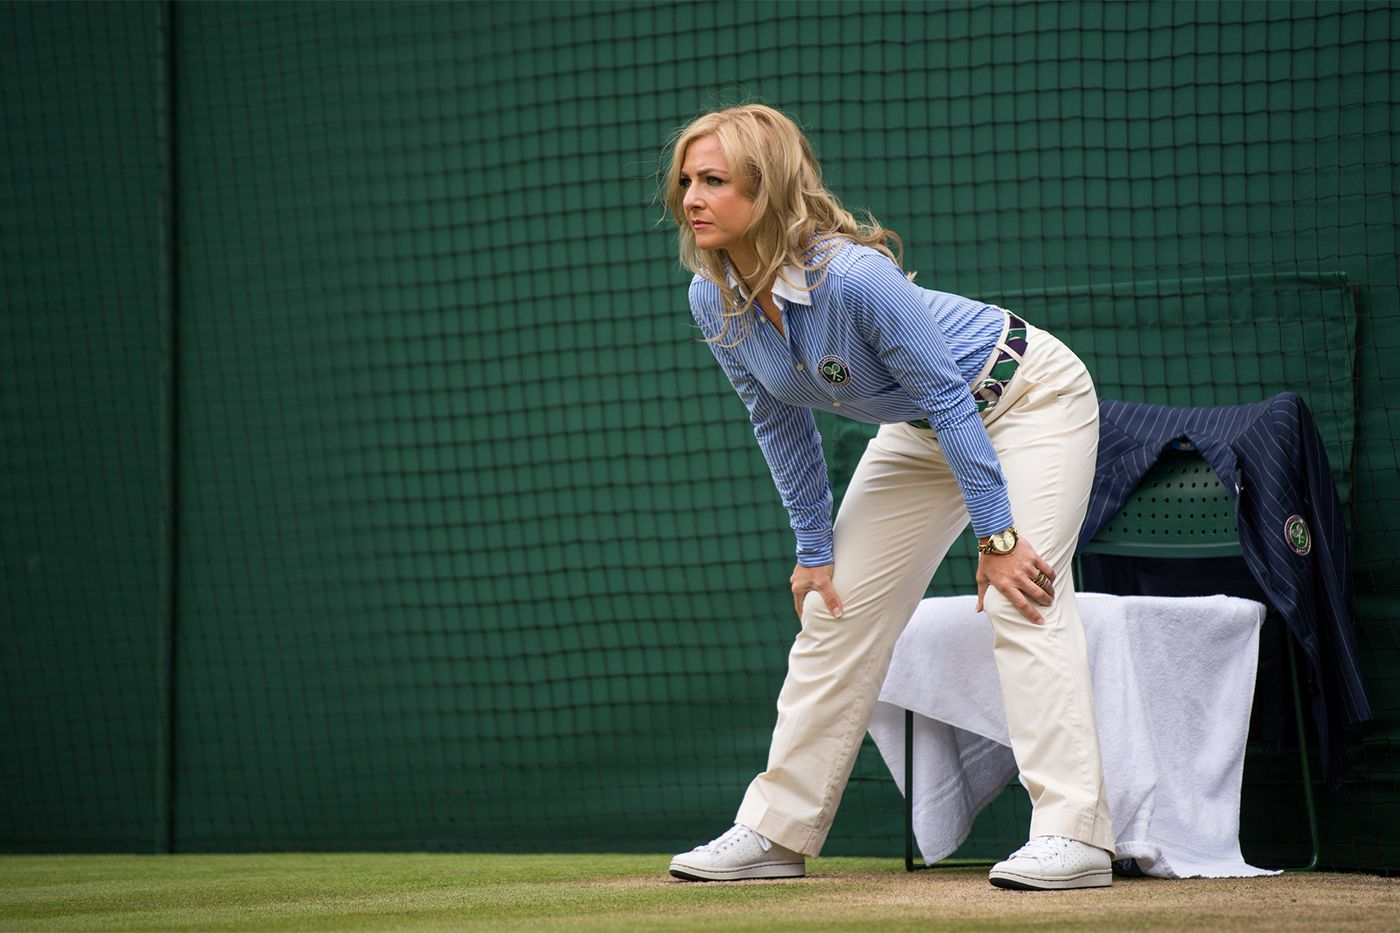 A Line Judge Watches Closely To See Where The Ball Lands During The Match Between Marin Cilic And Sam Querrey Wimbledon Tennis Players Wimbledon Final